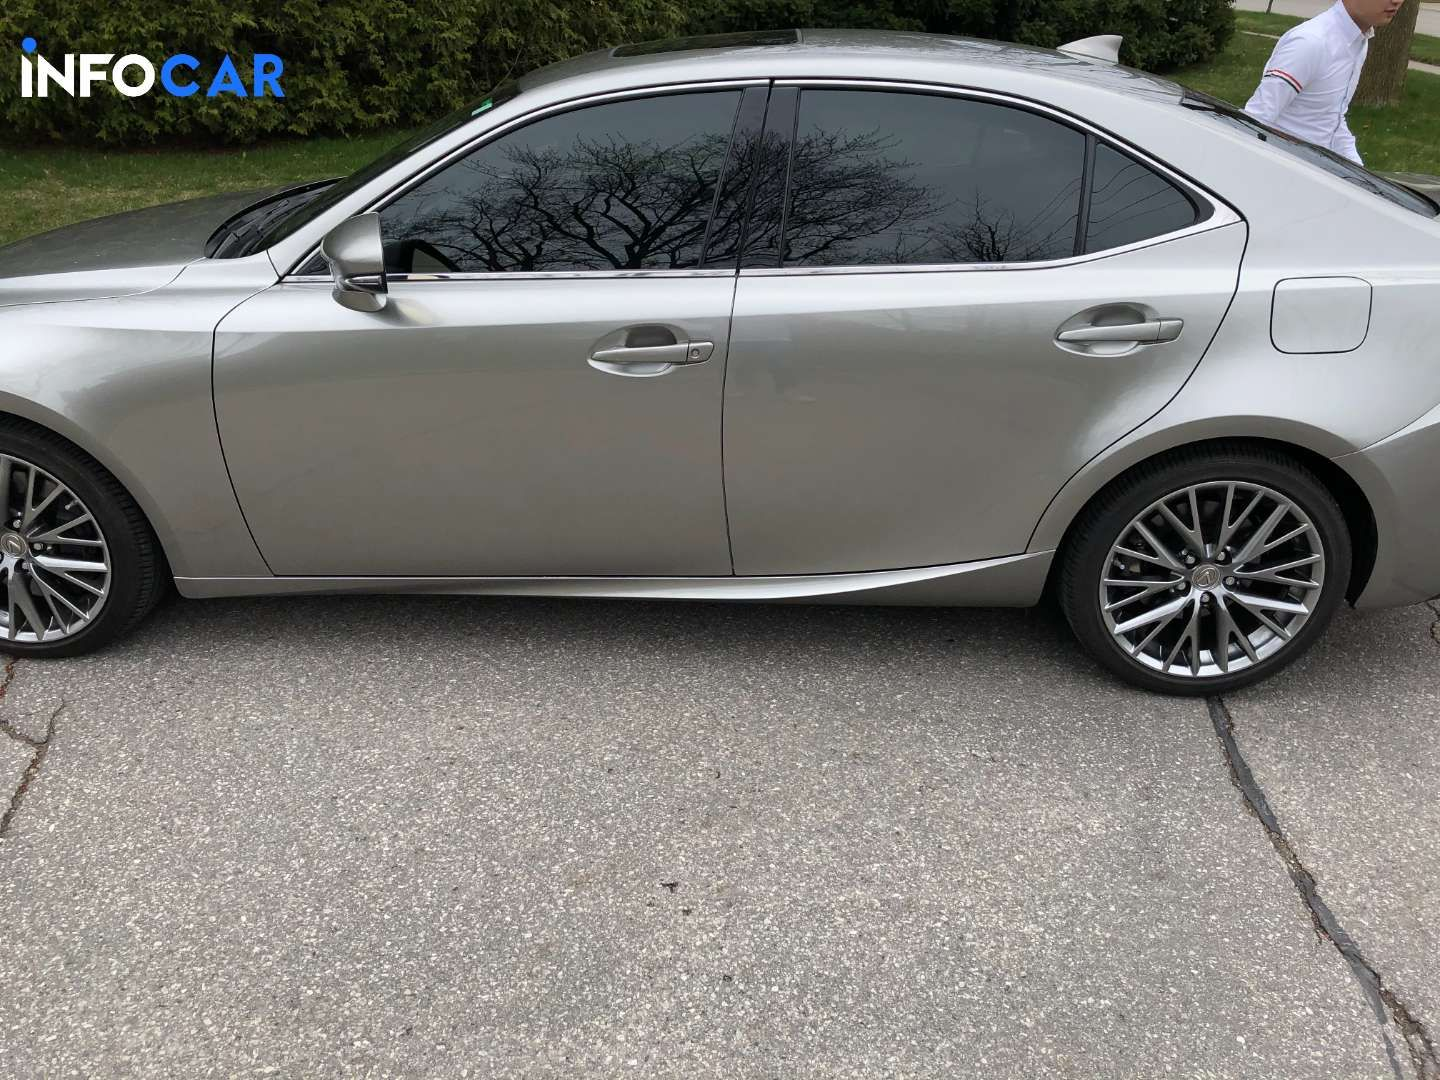 2019 Lexus IS 300 IS 300 AWD - INFOCAR - Toronto's Most Comprehensive New and Used Auto Trading Platform